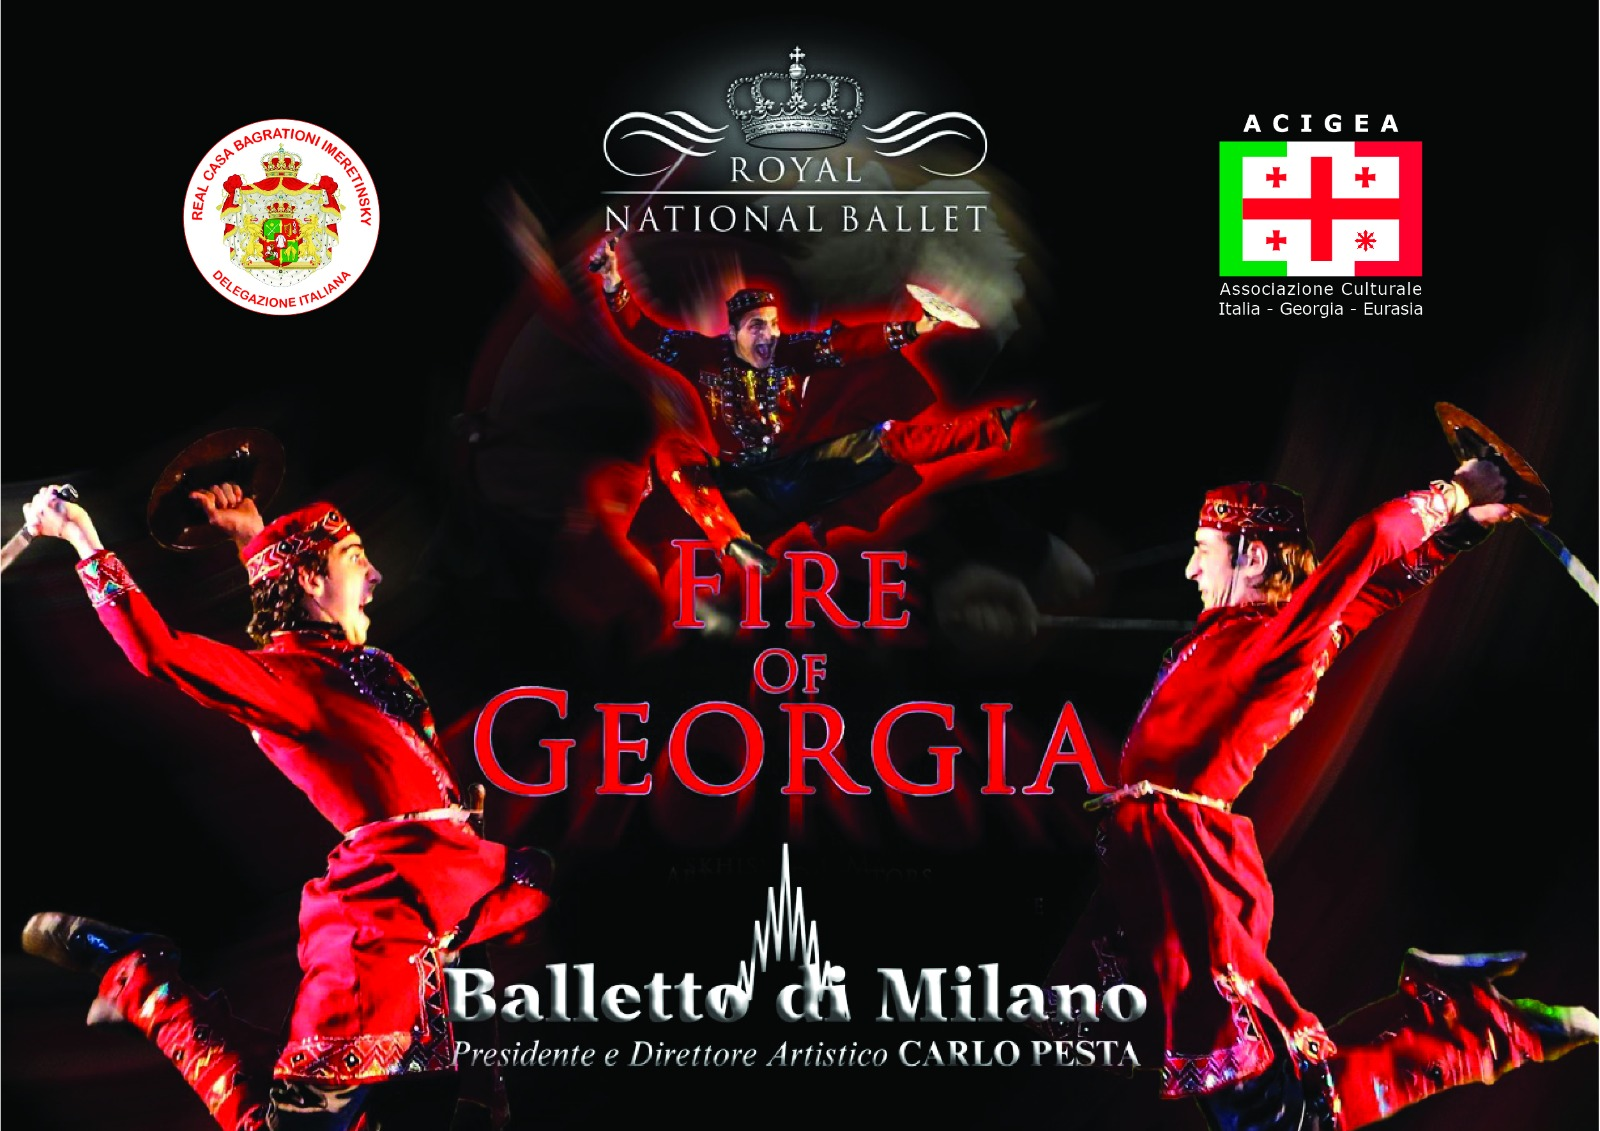 Royal National Ballet of Georgia